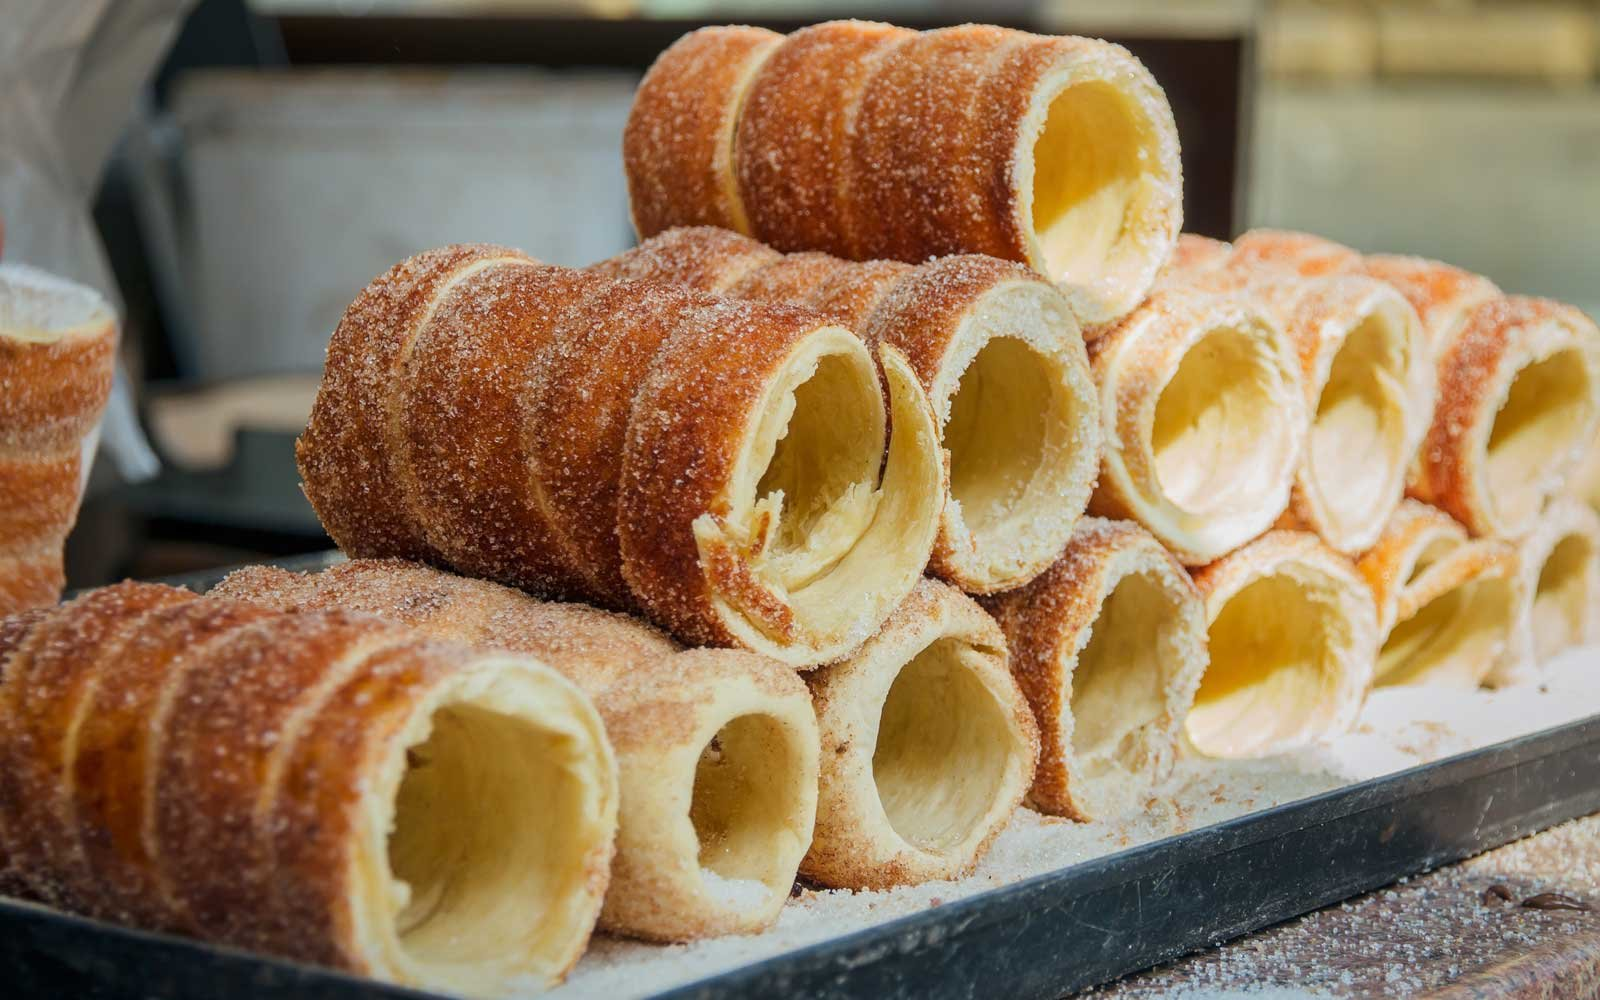 Chimney cakes are baked over a fire to caramelize and are topped with cinnamon and sometimes nuts.